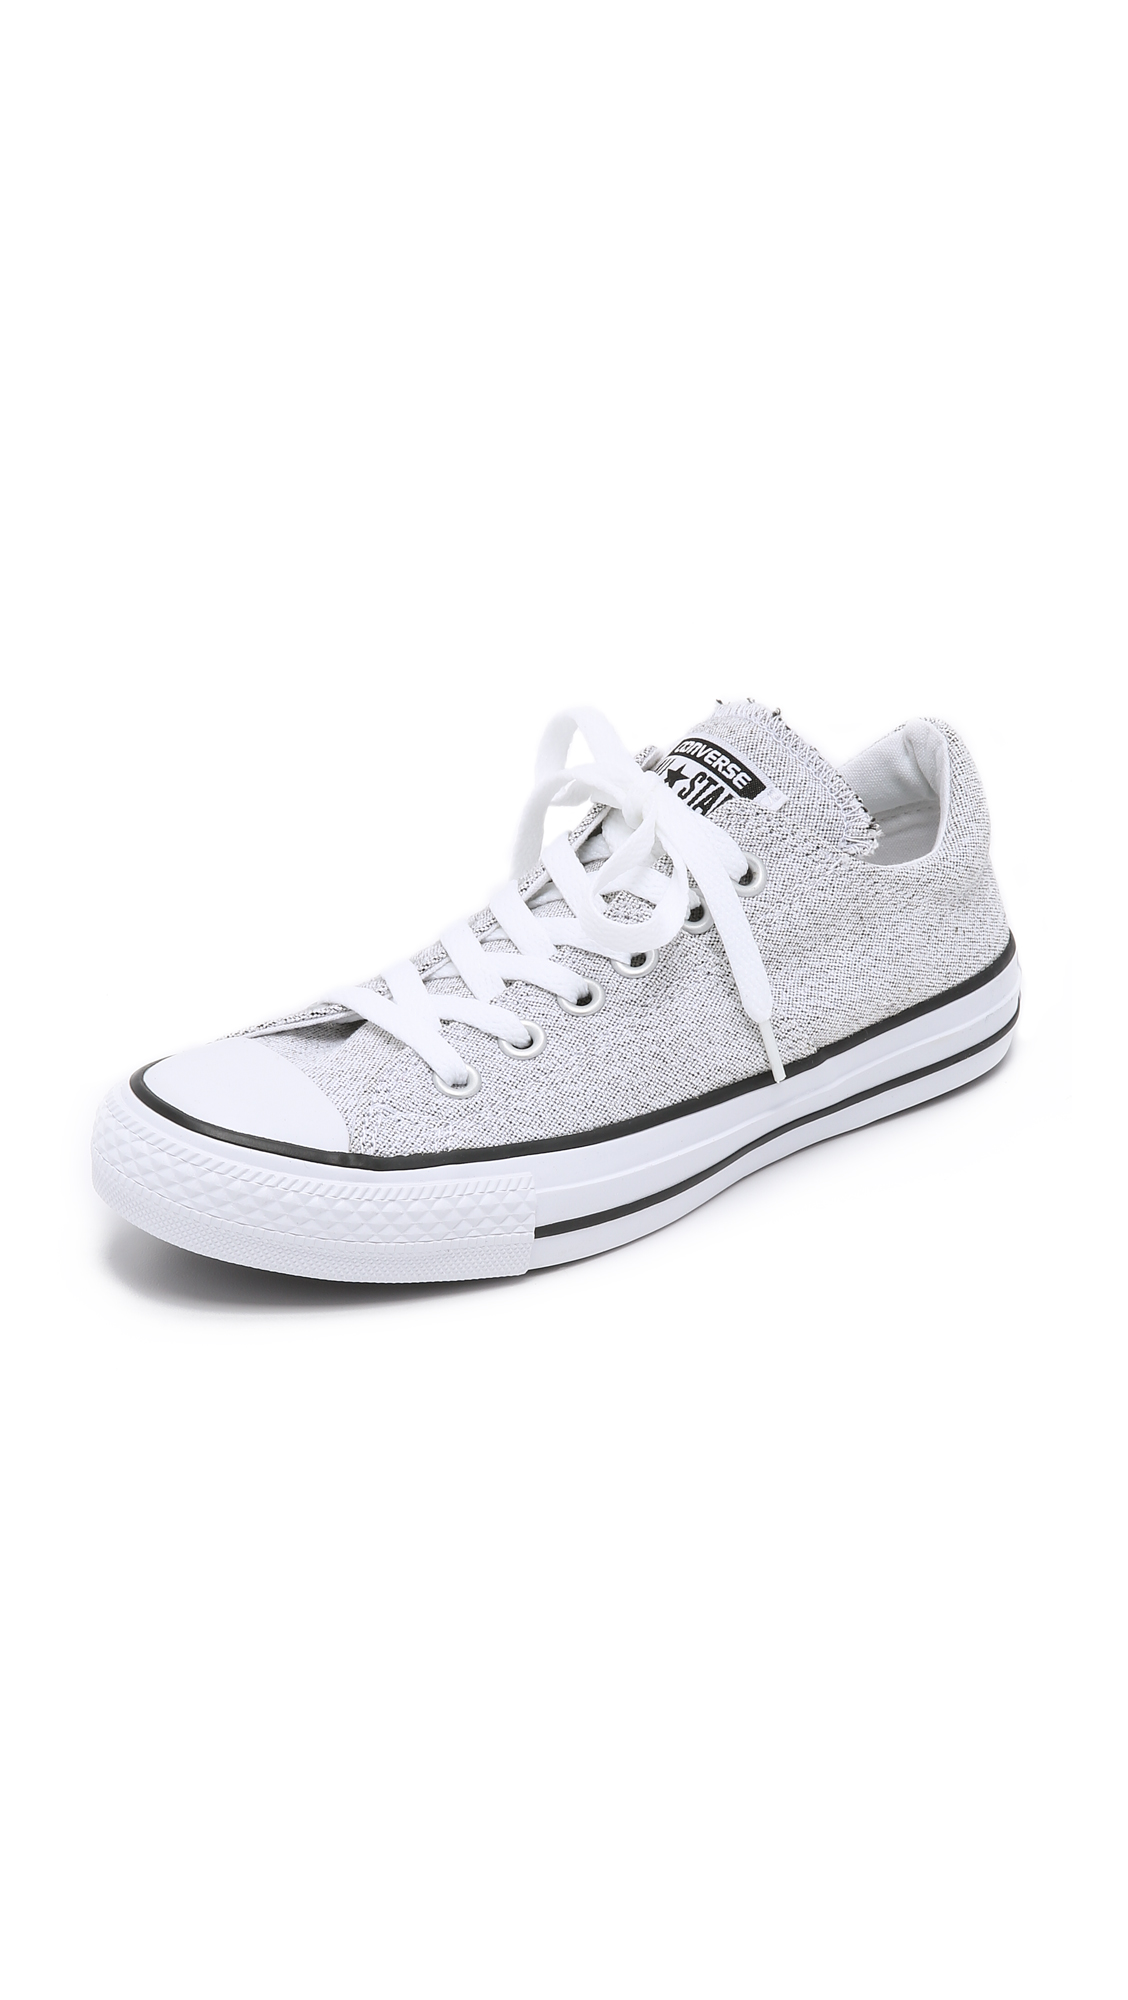 fa36f7e56f0e1 Converse Chuck Taylor All Star Madison Sneakers